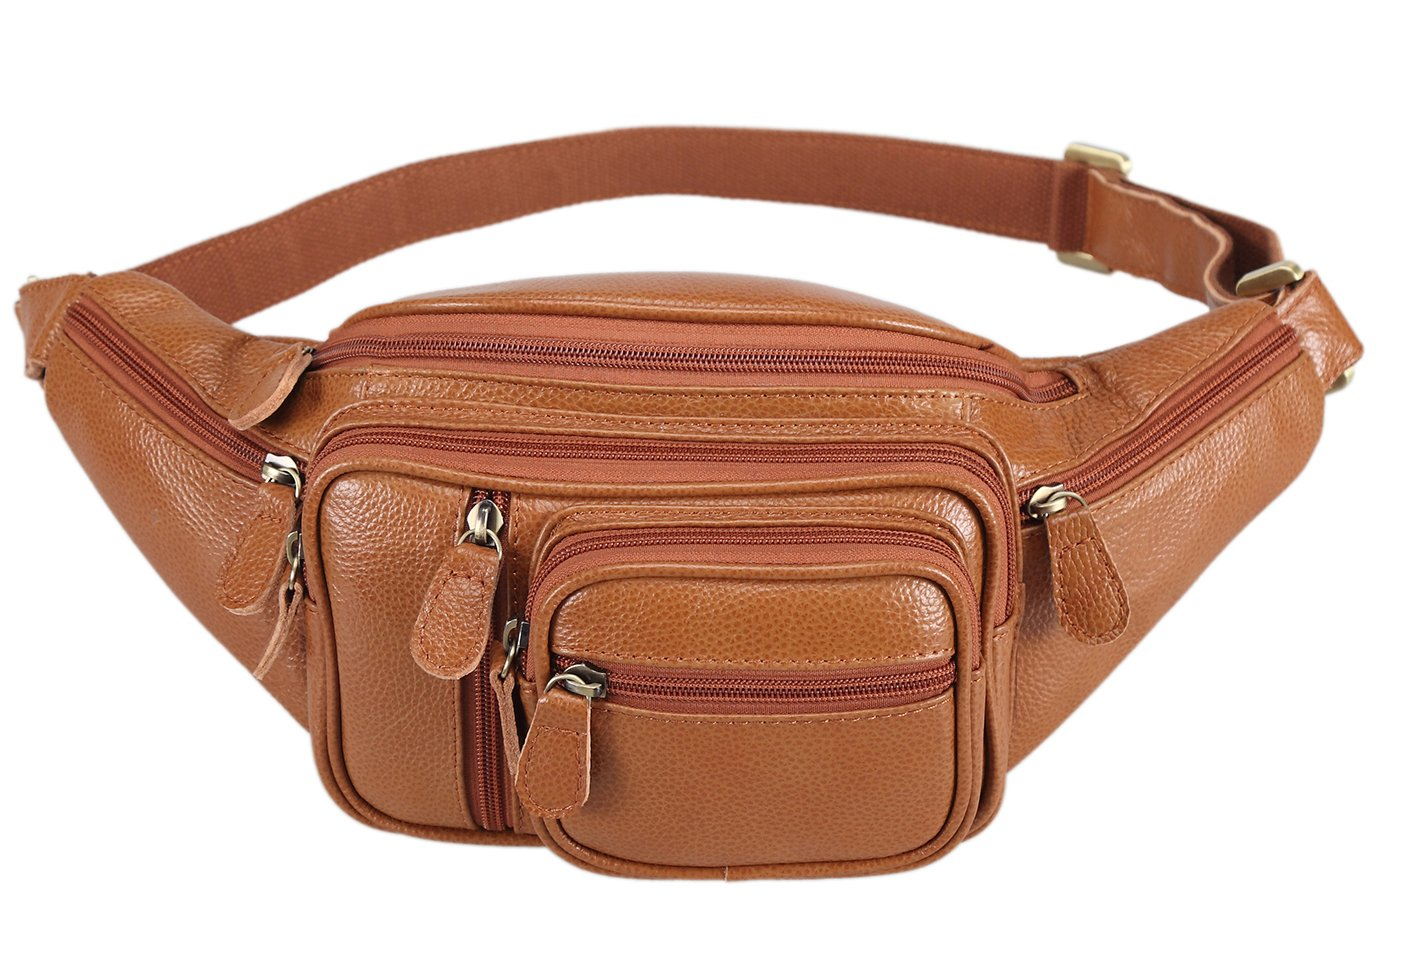 Polare Men's Natural Leather Fanny Pack Waist Bag Brown Large